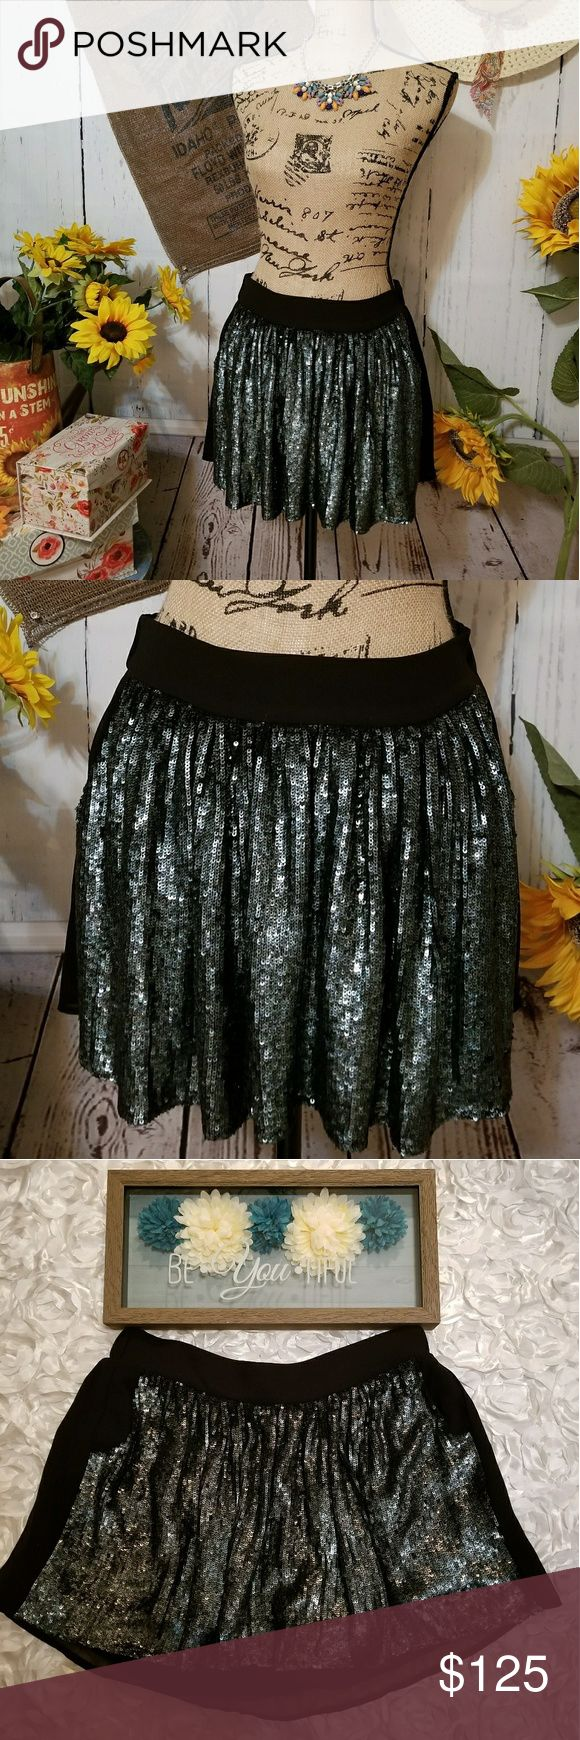 "*NEW ARRIVAL!! LITTLE DESIGNER SEQUINED MINI SKIRT MSRP $238!! GORGEOUS!! Wow NICE!! Bought exclusively for Poshing. ""Smile SUPER CUTE LITTLE black SEQUINED MINI SKIRT. Sequins are a shimmery bluish green. GORGEOUS! HAS 2 little hand pockets in front hard to see in pics. MEASURES about 14 in long.  Extremely beautiful and sporty with the little pockets! Fully lined and is not fitted, is swing style. Dry clean only. 100% poly. VERY unique and GORGEOUS!! Have SM&MED! Chaser Skirts Mini"